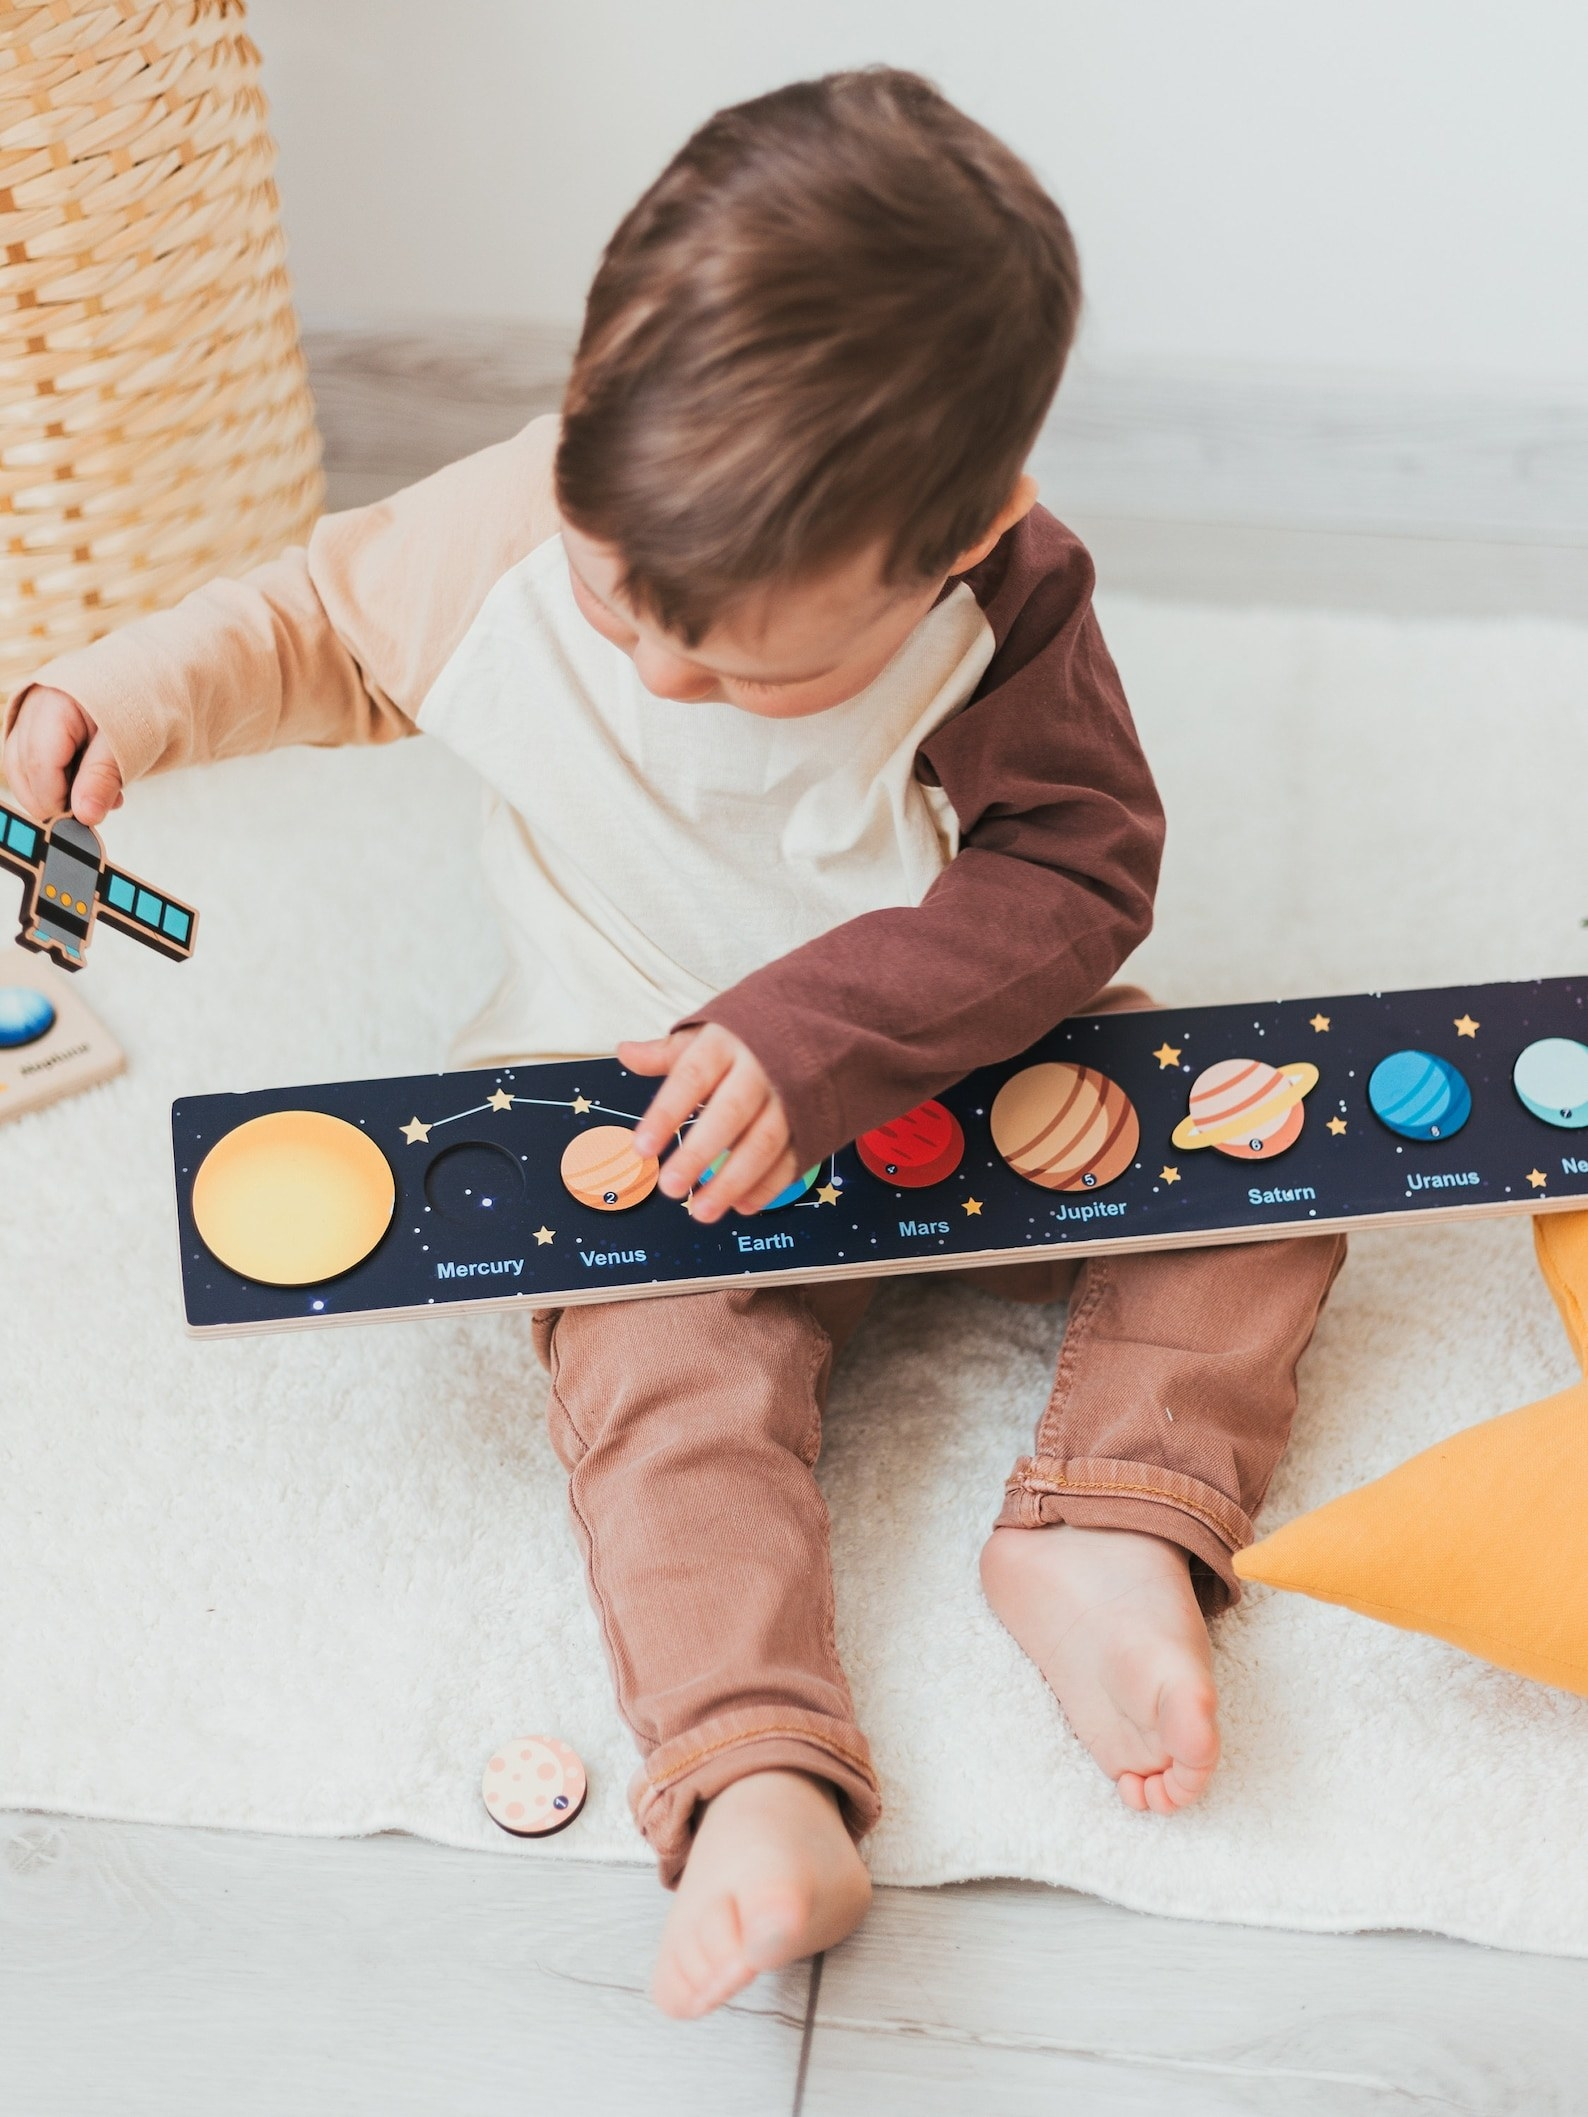 A child playing with the wooden solar system puzzle